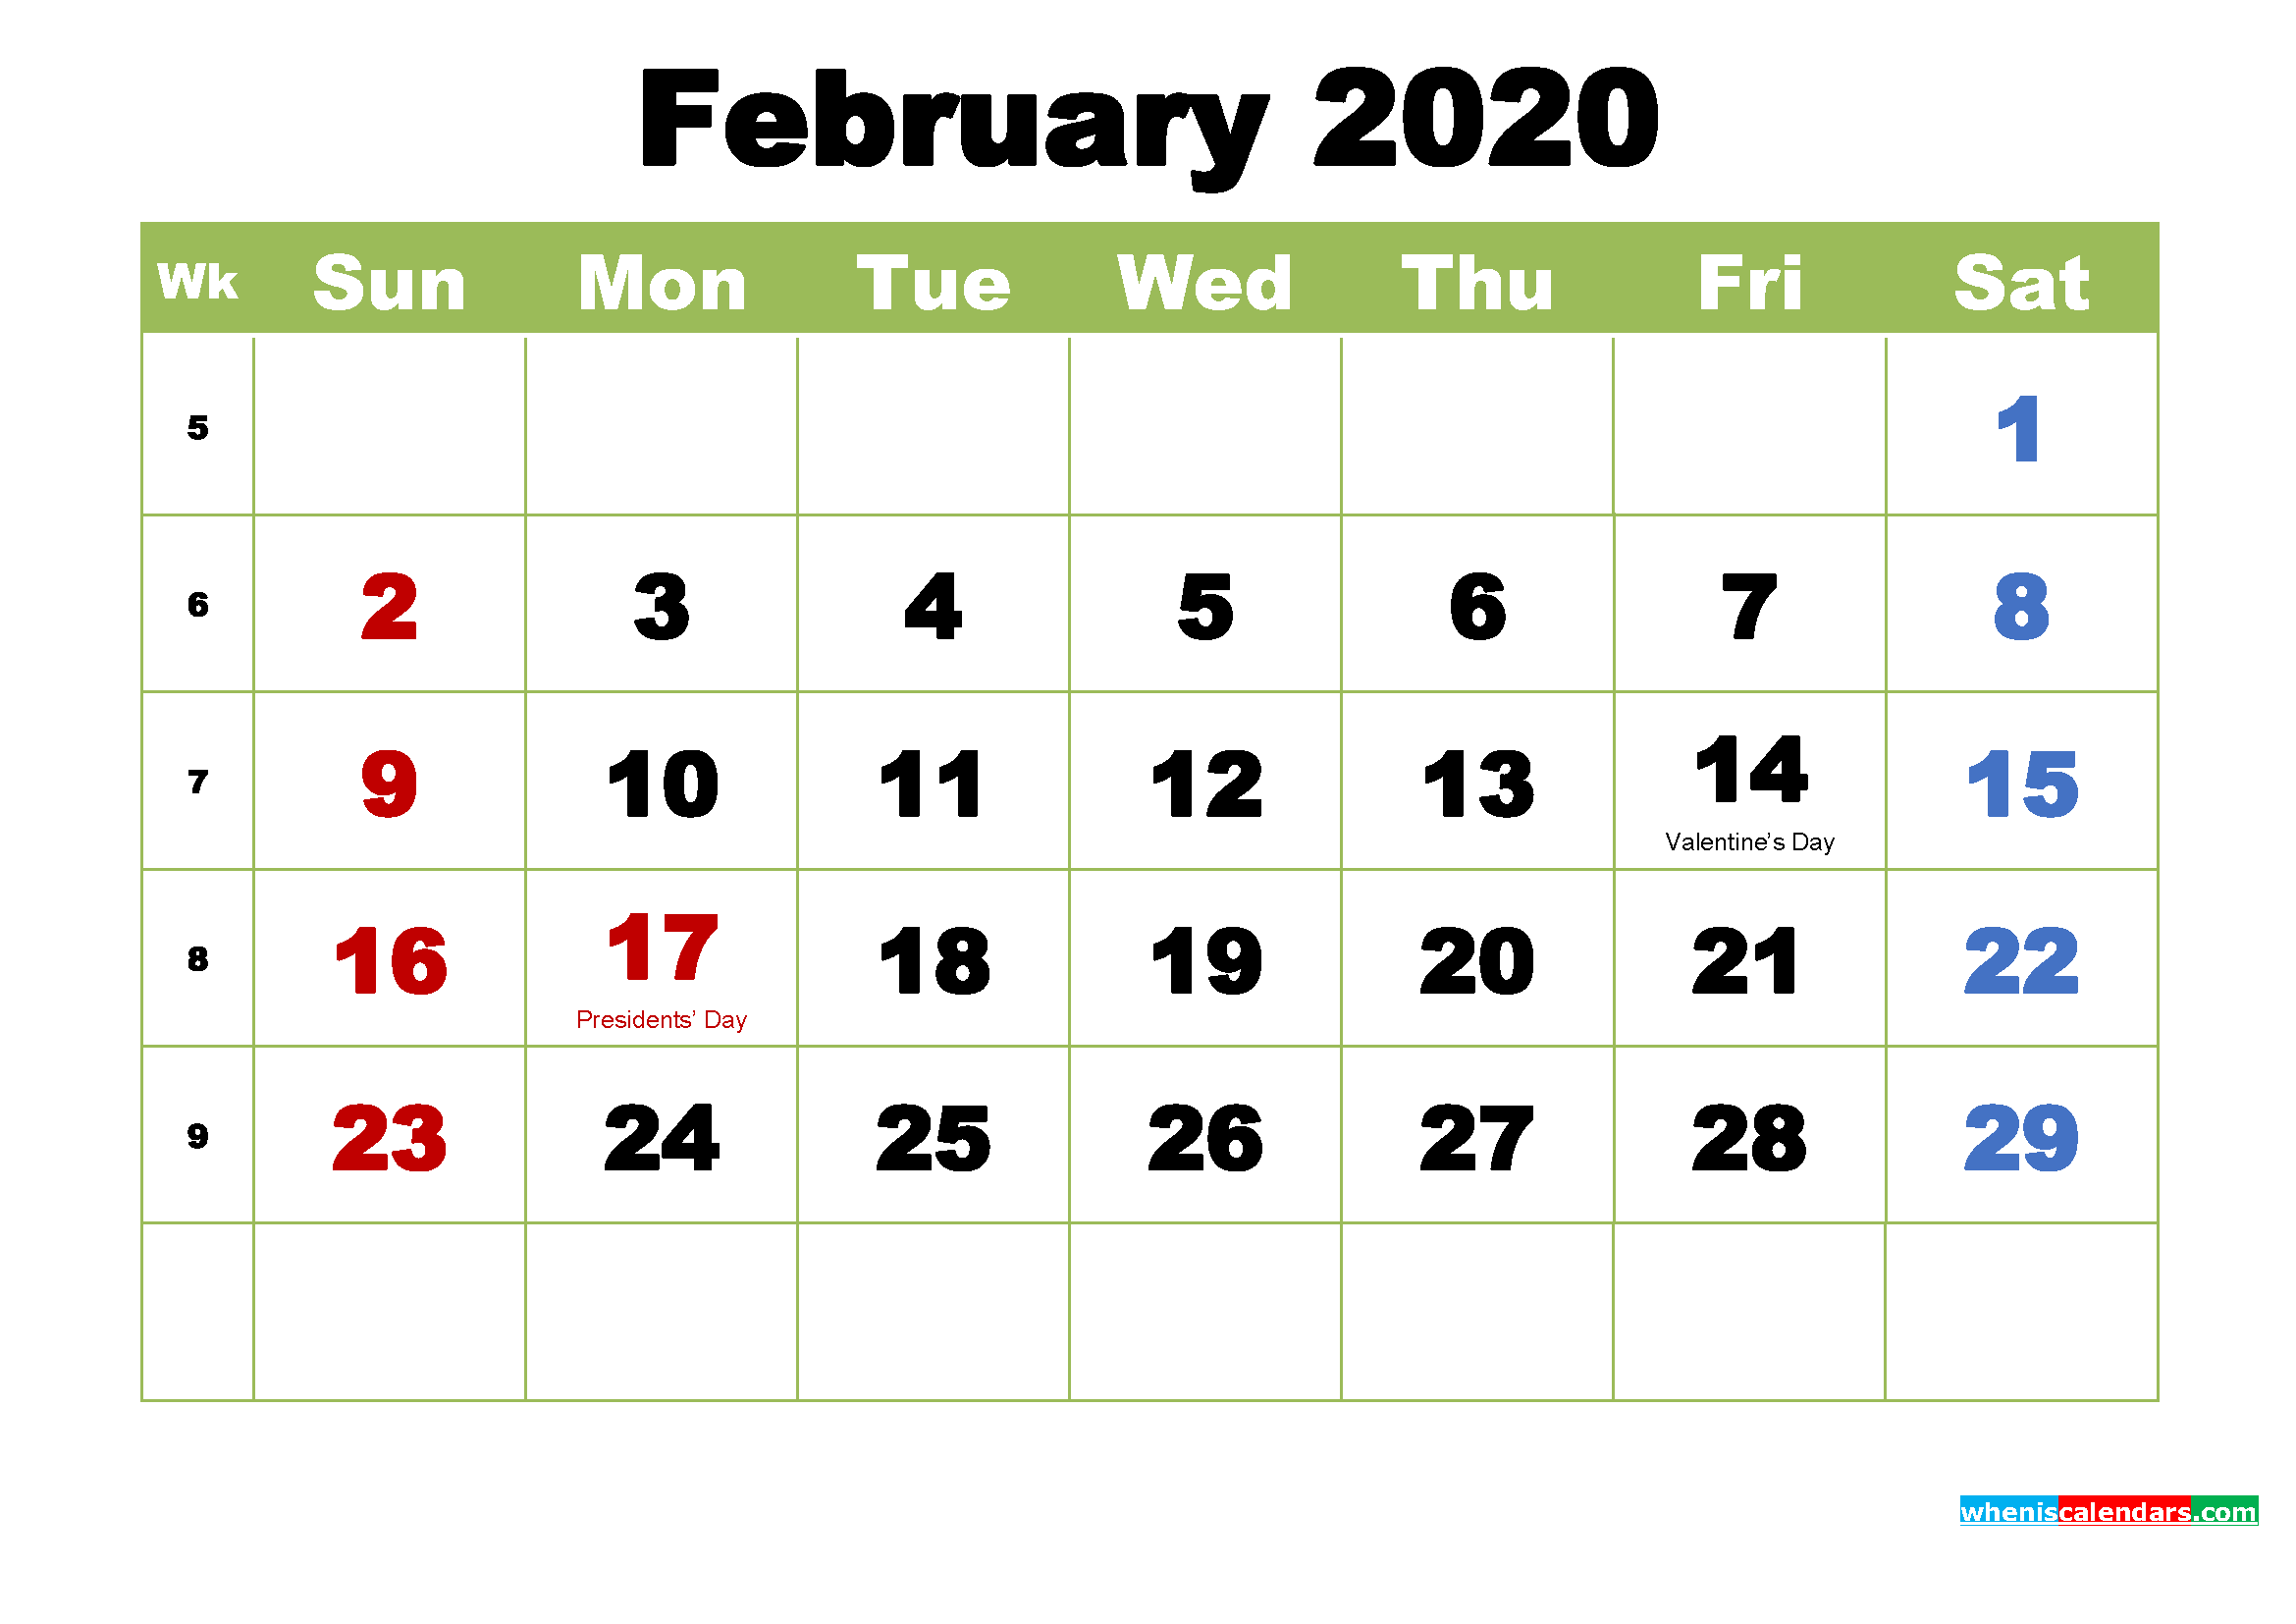 Free February 2020 Printable Calendar with Holidays